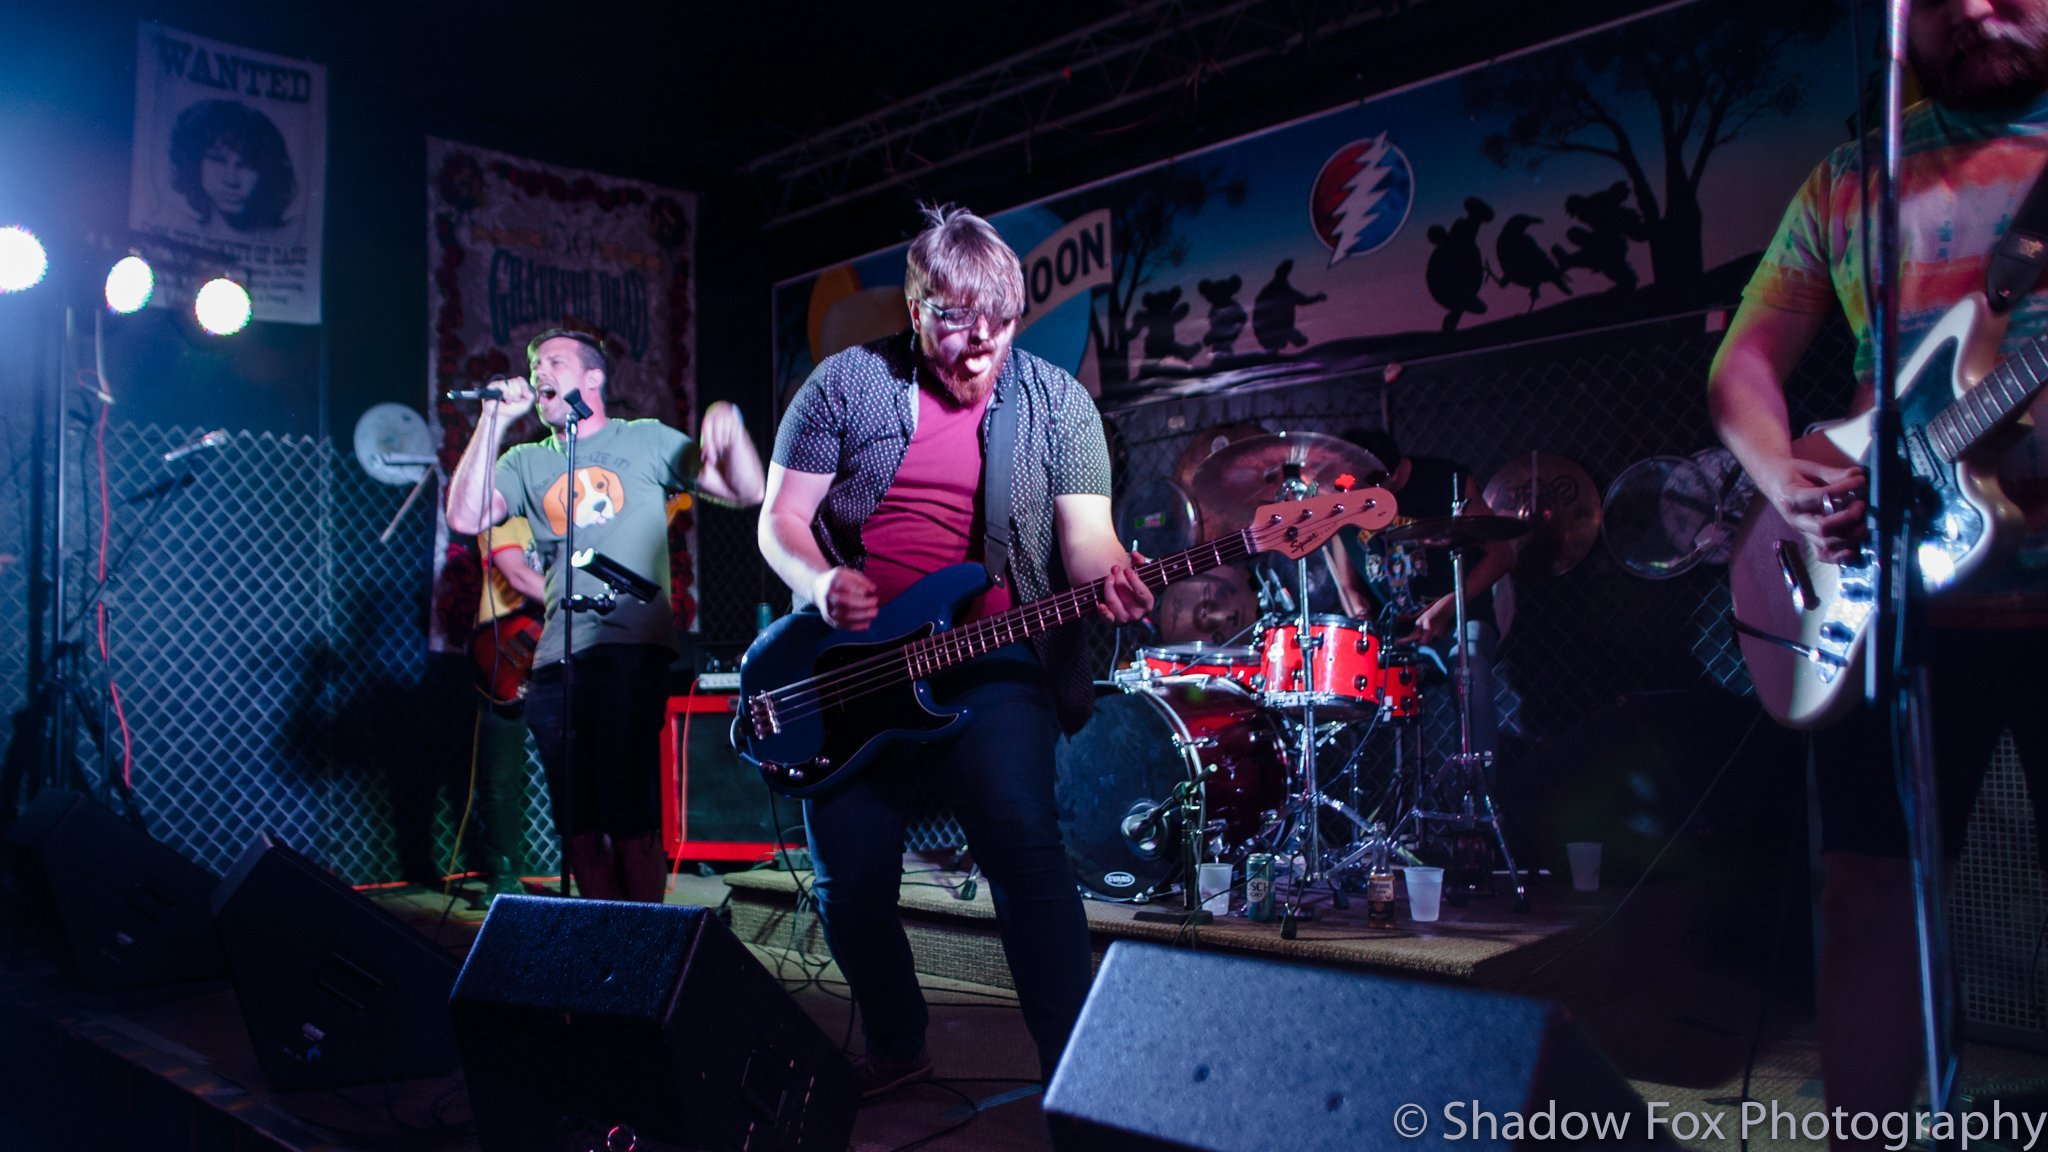 Friendly Fire: On playing at Faces Turned Ashen's album release show at Tailgators in Cedar Rapids, Iowa